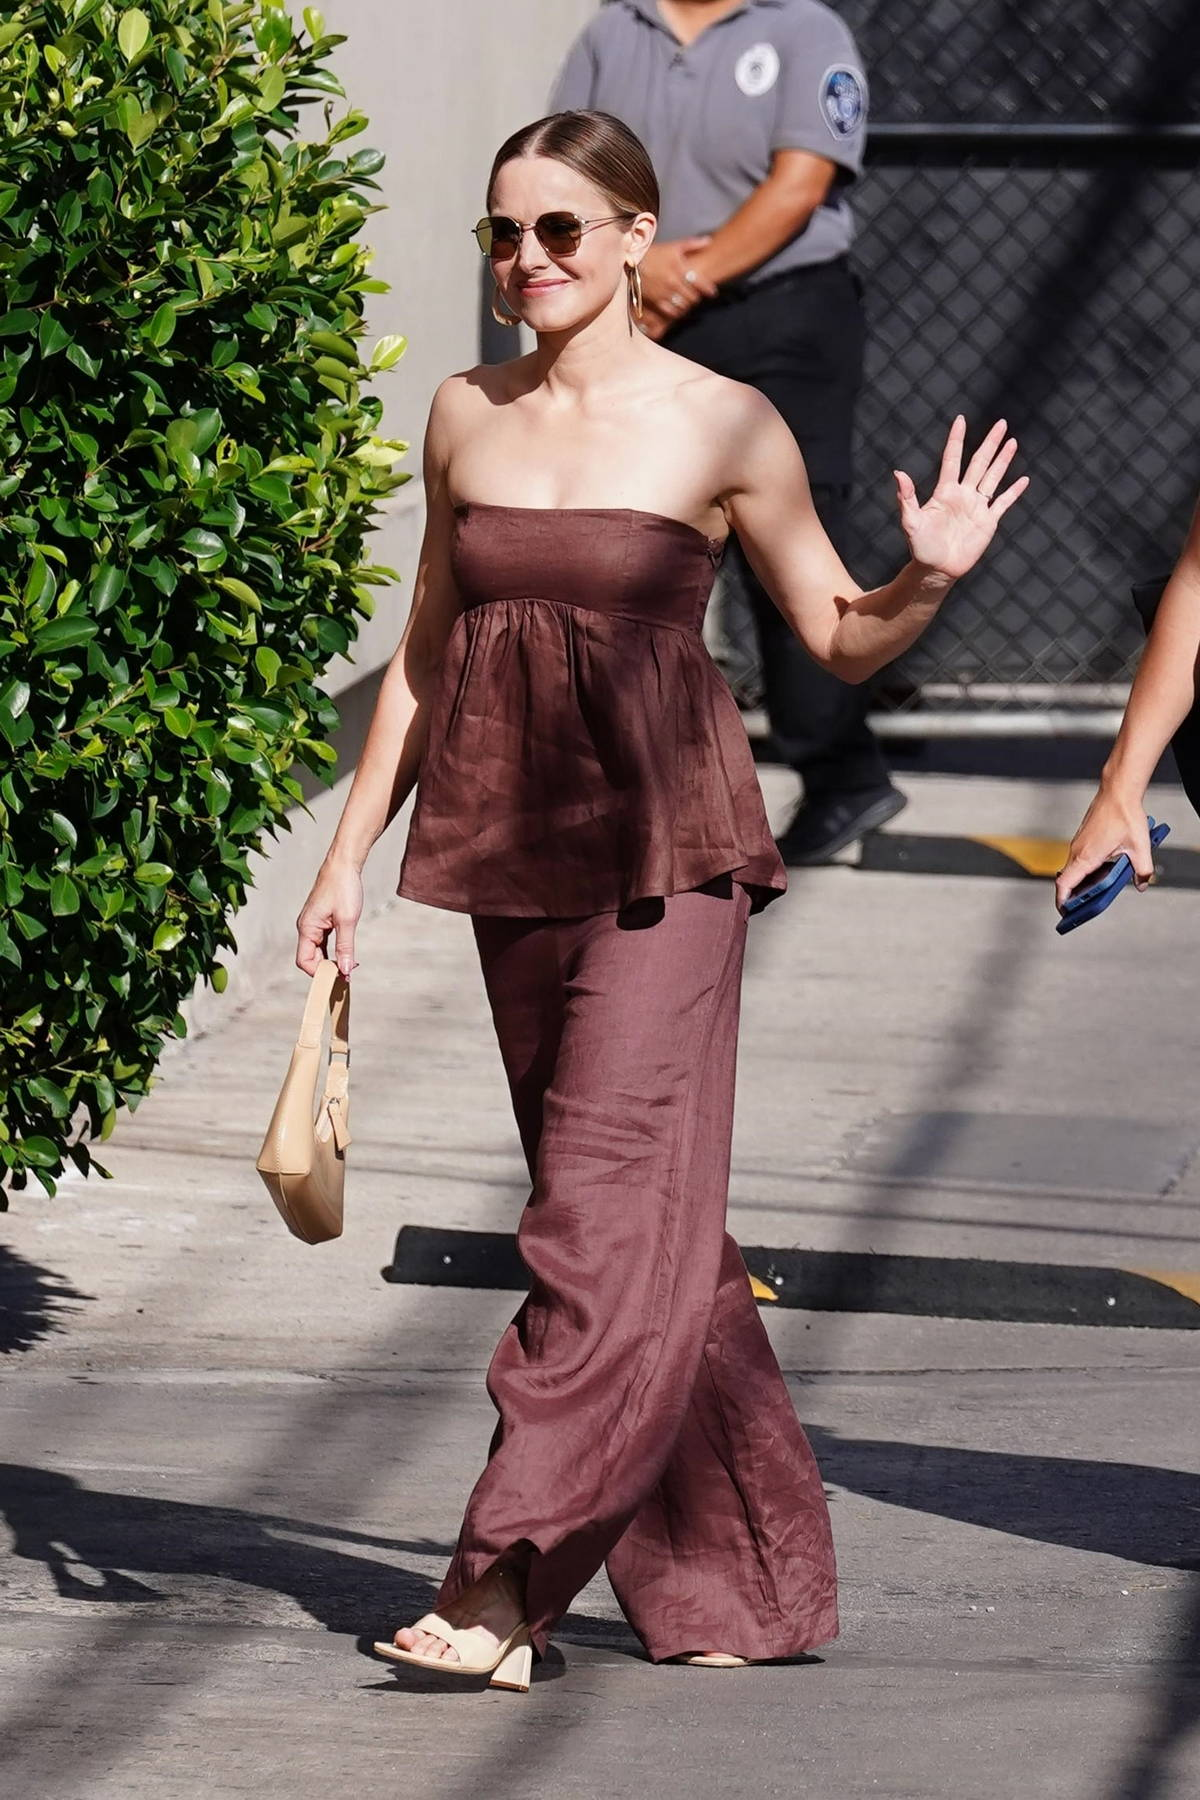 Kristen Bell dons a brown ensemble as she arrives for her appearance on 'Jimmy Kimmel Live' in Hollywood, California